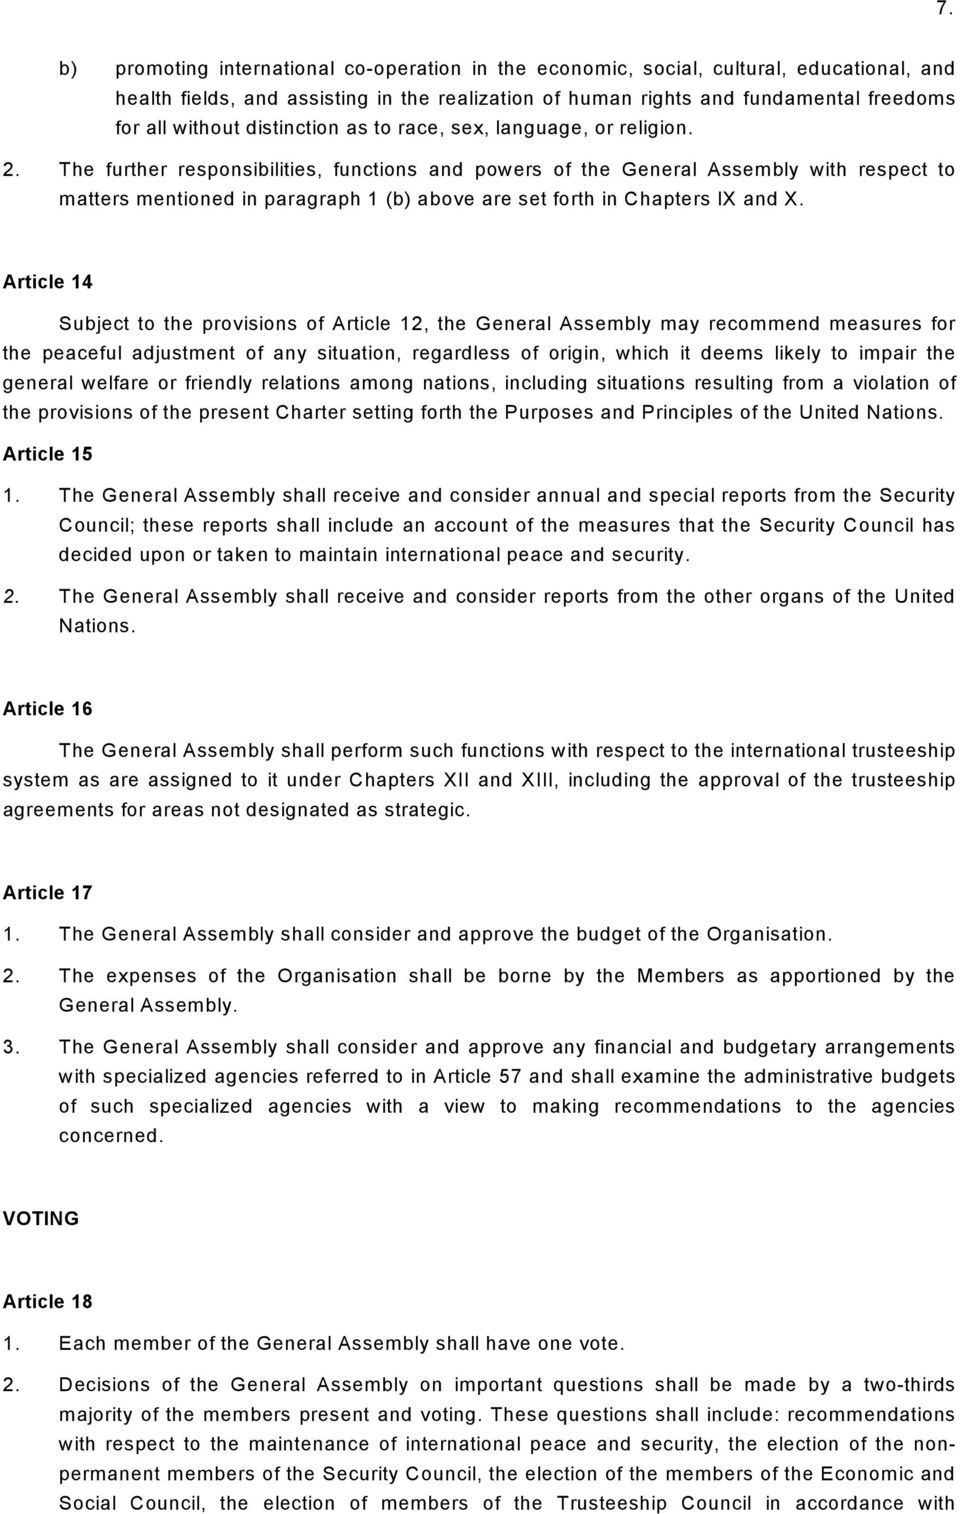 The further responsibilities, functions and powers of the General Assembly with respect to matters mentioned in paragraph 1 (b) above are set forth in Chapters IX and X.